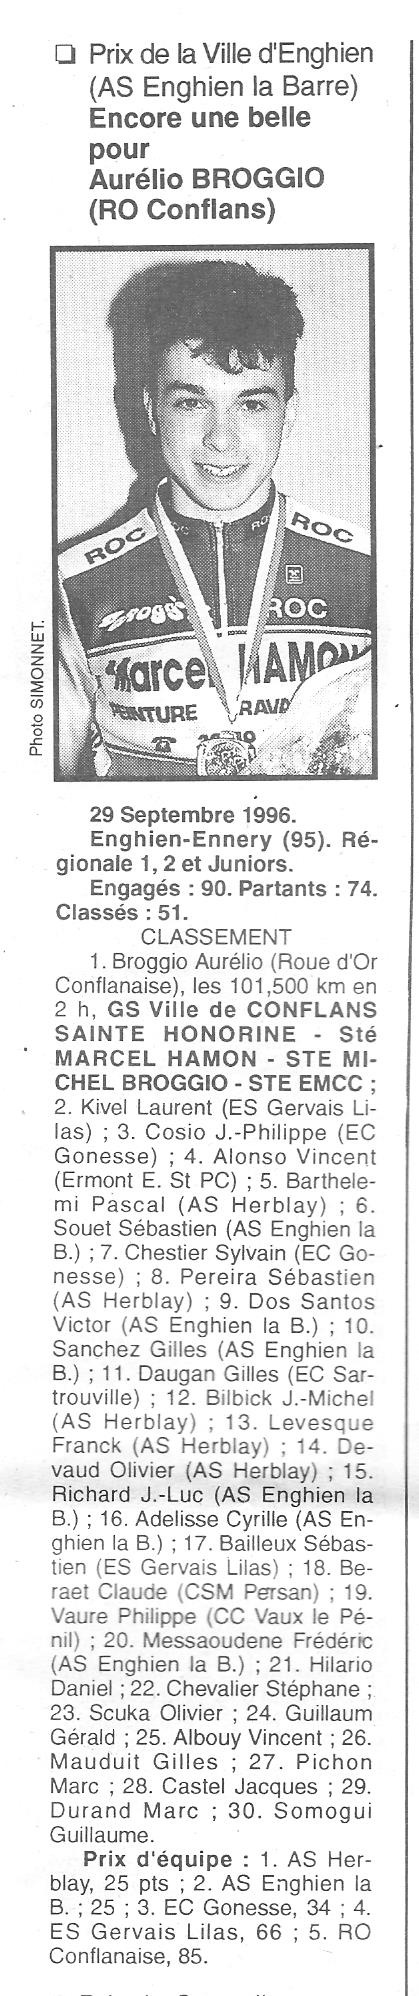 Coureurs et Clubs de Octobre 1993 à Septembre 1996 - Page 42 0_02220